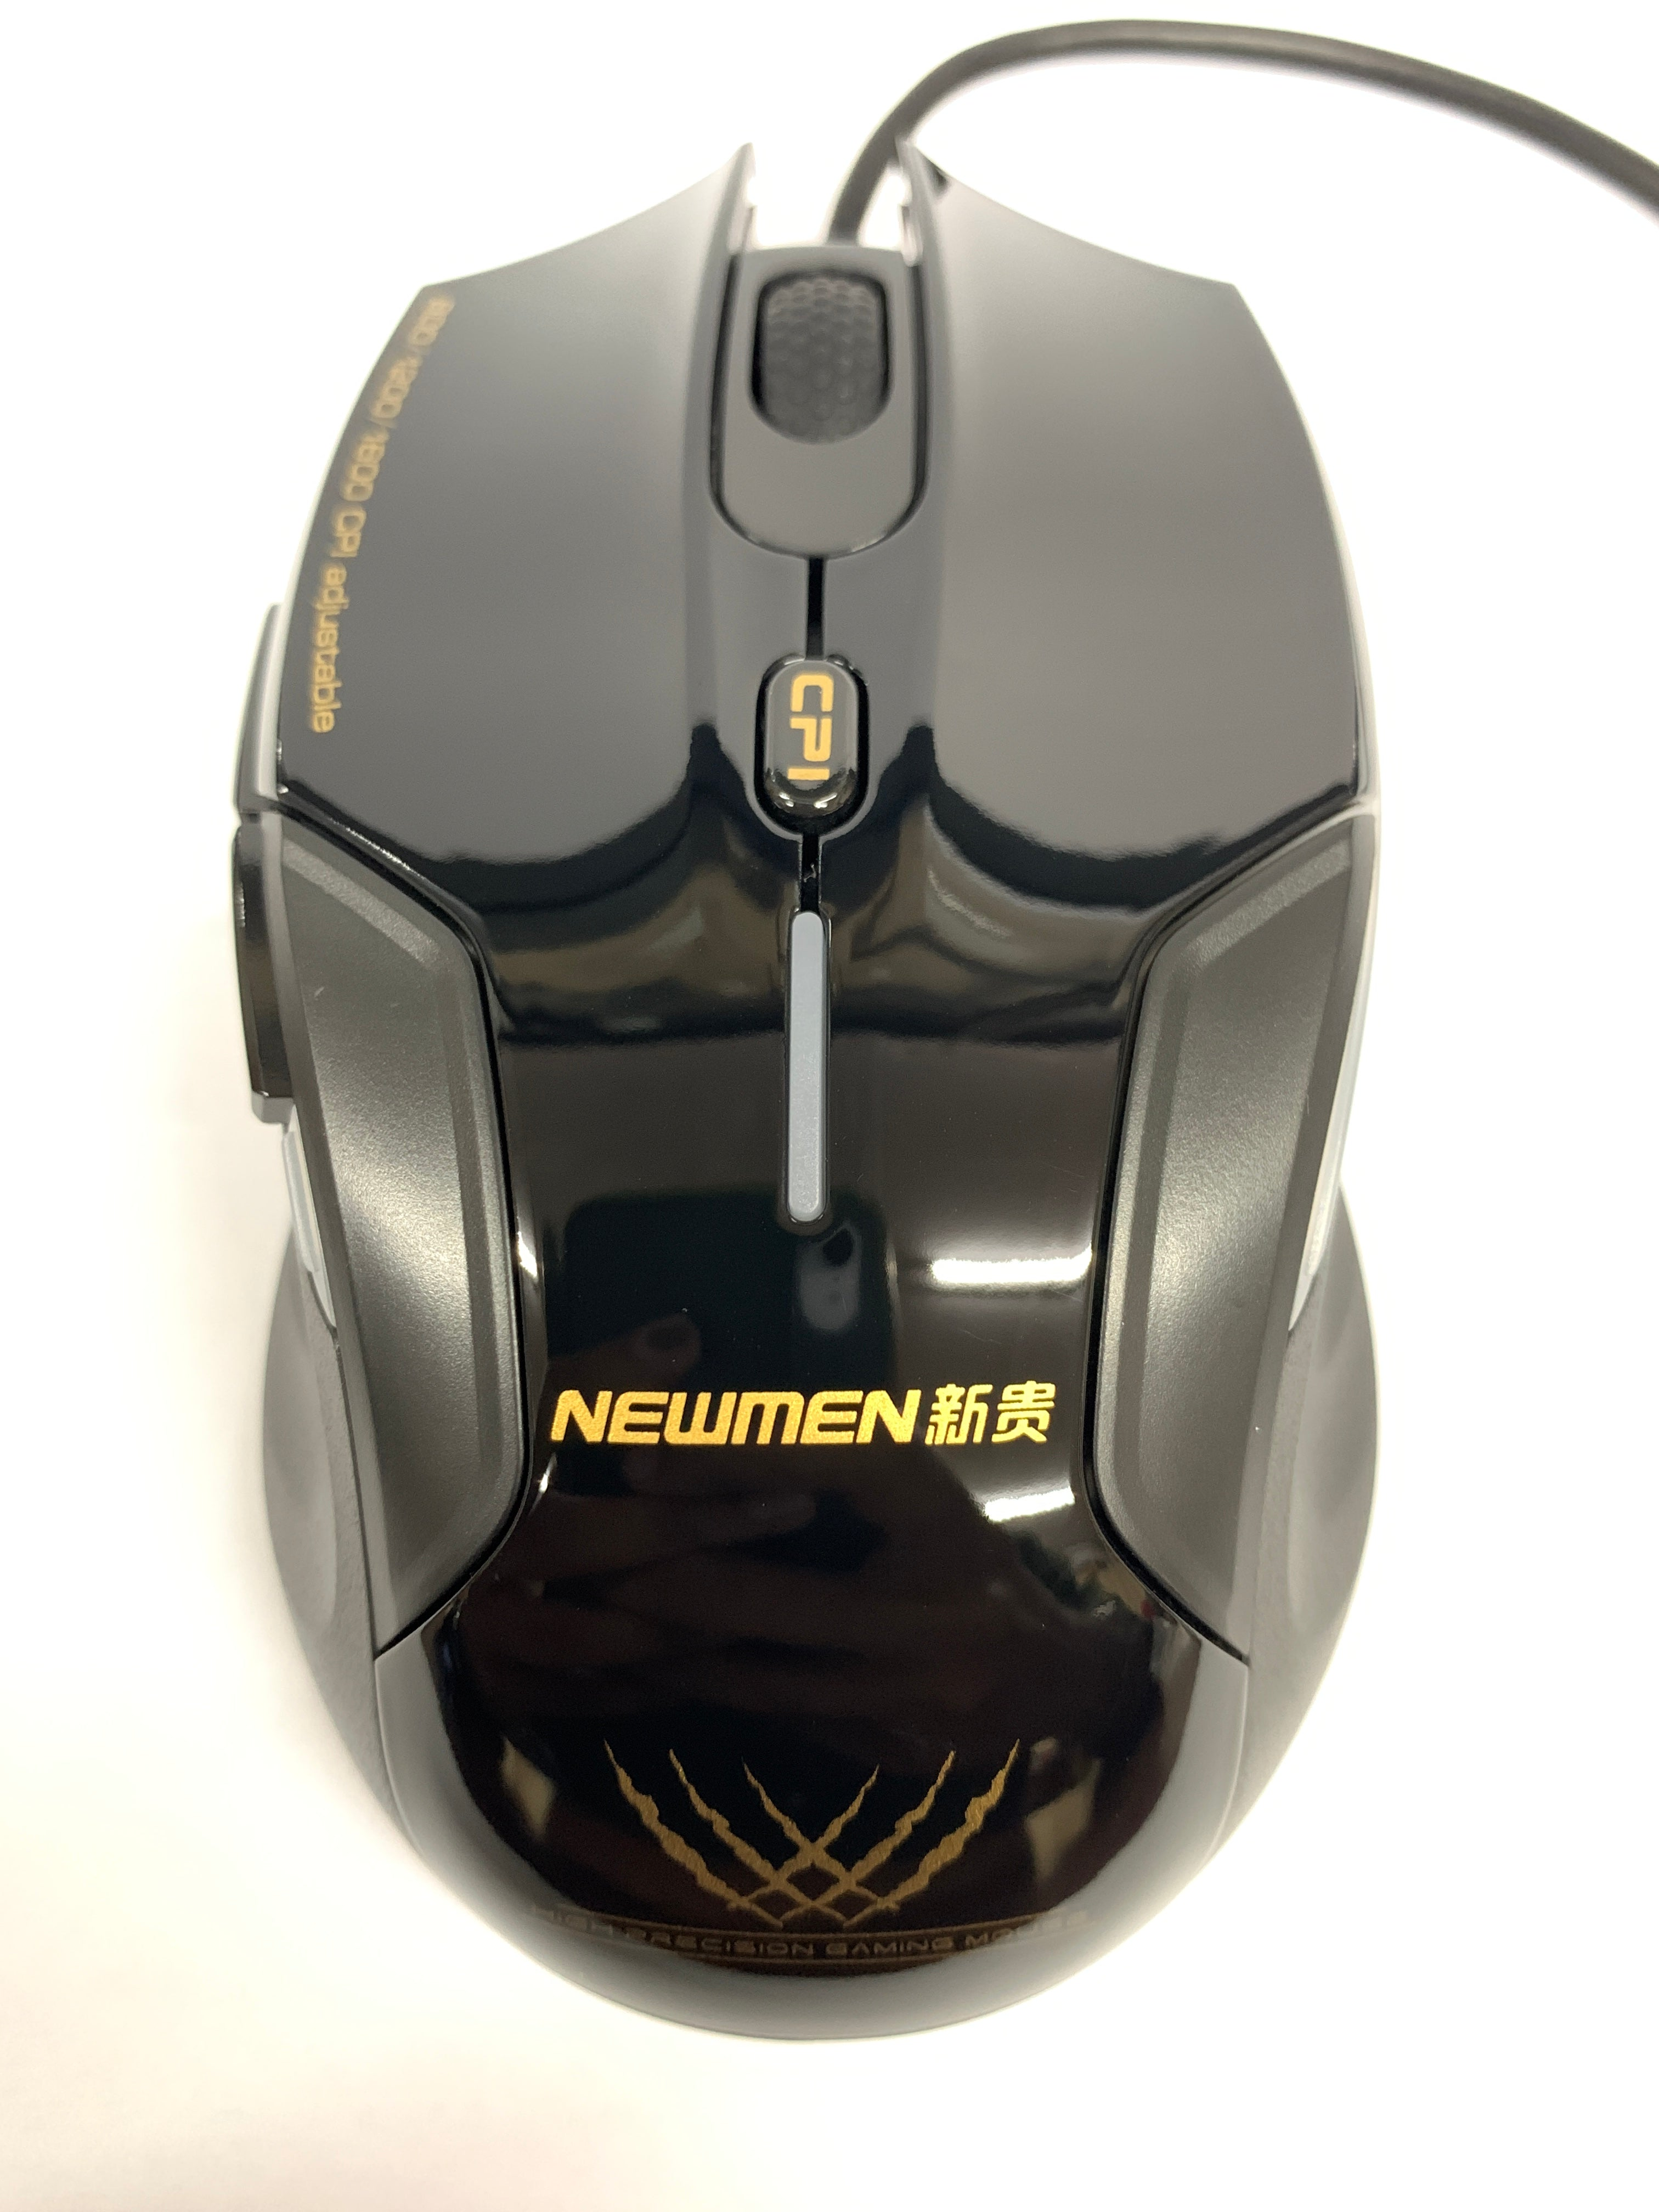 mobilegear newman N500 High precision gaming mouse